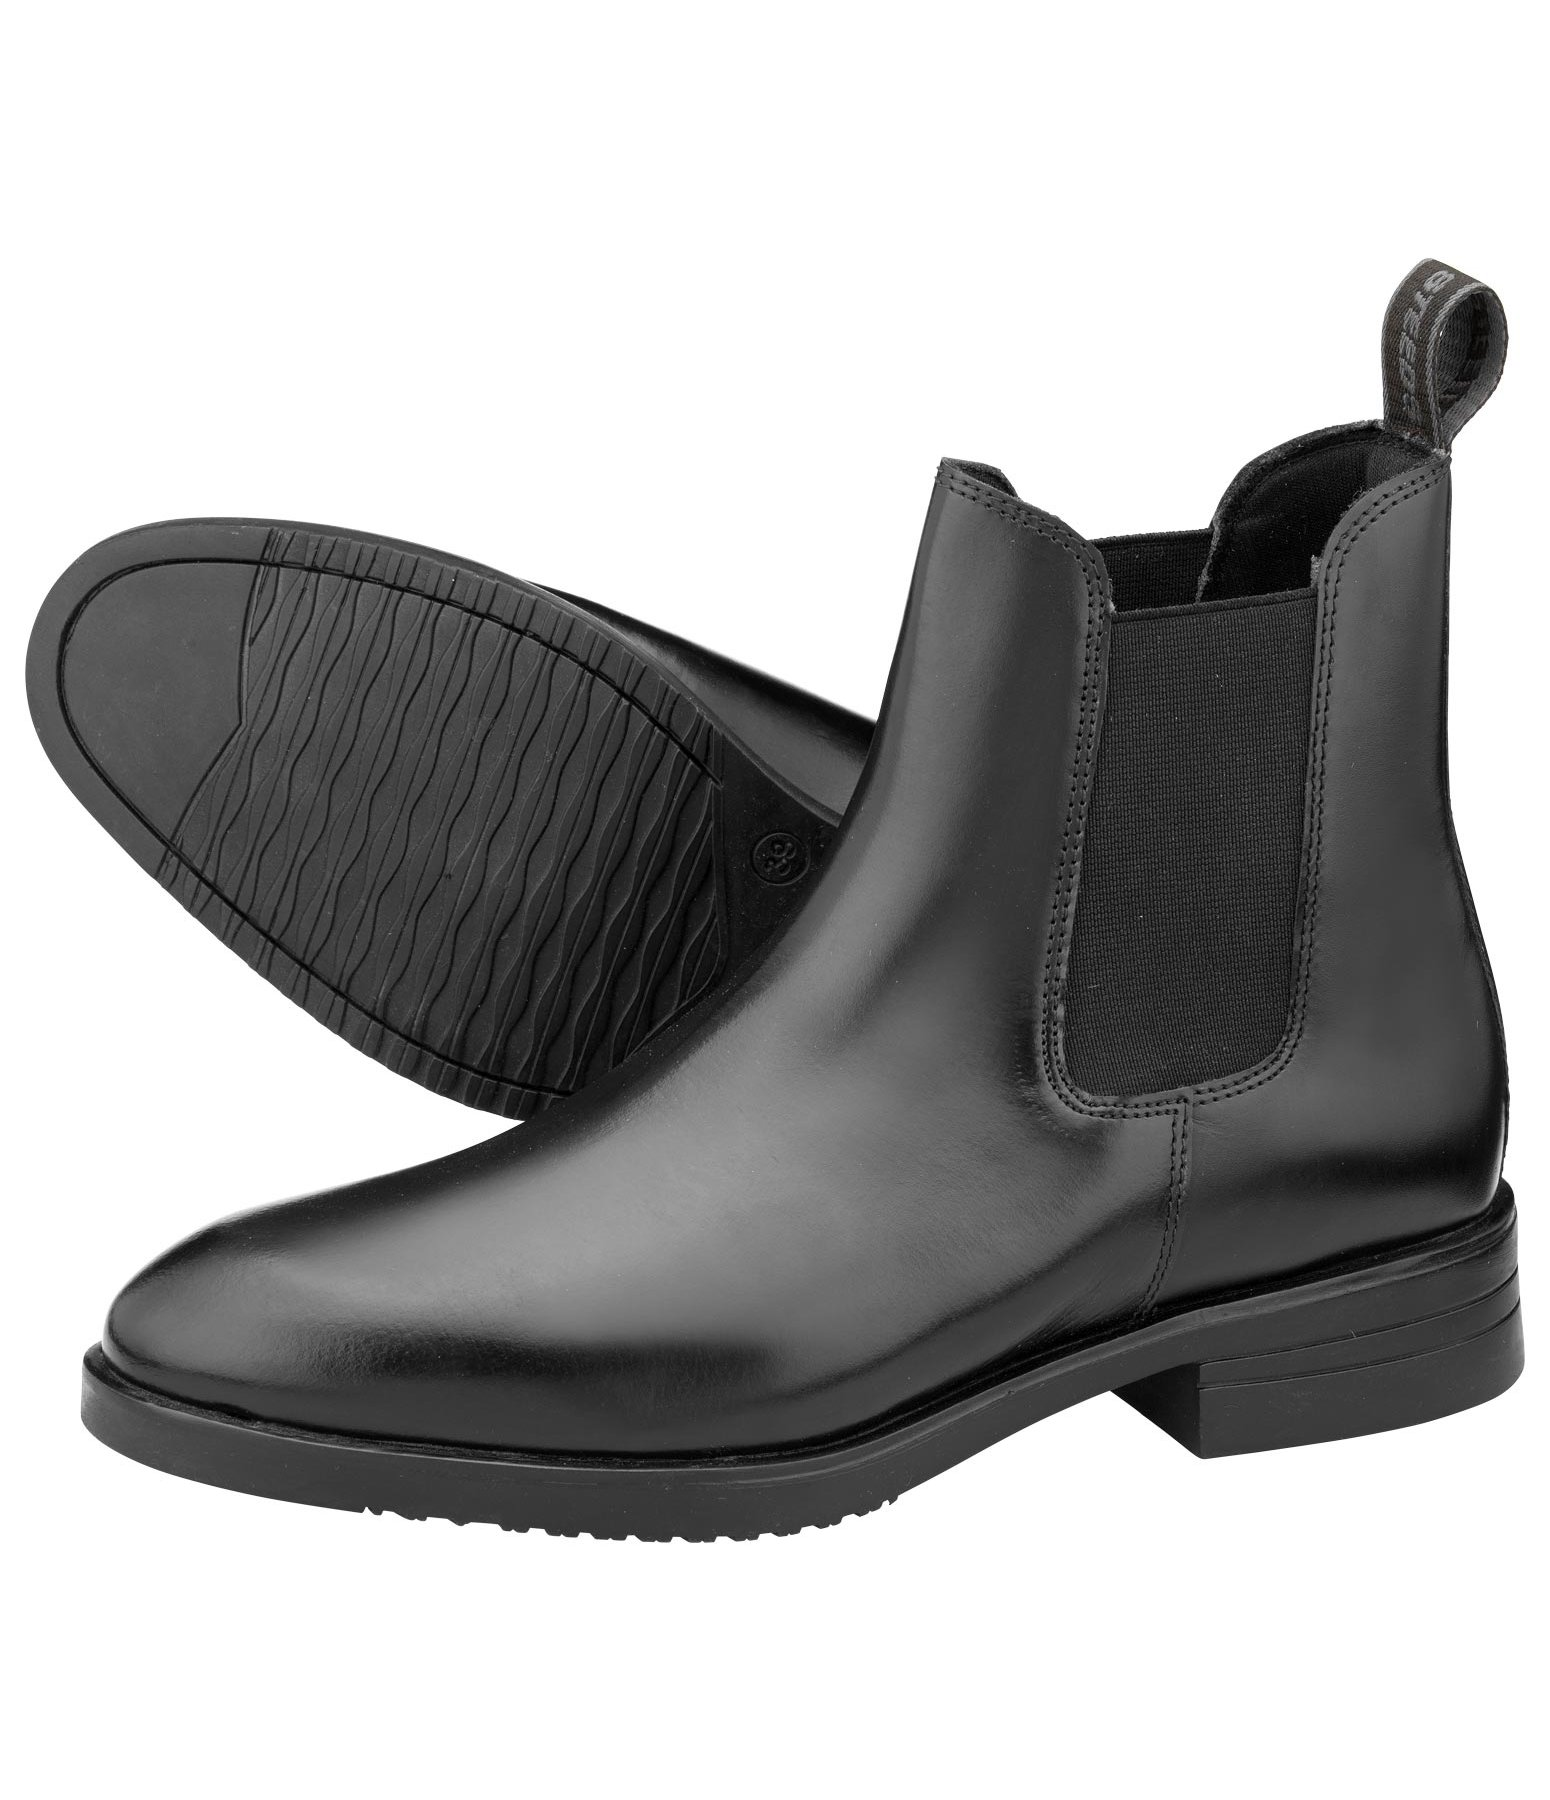 Jodhpur Boots Athletic II